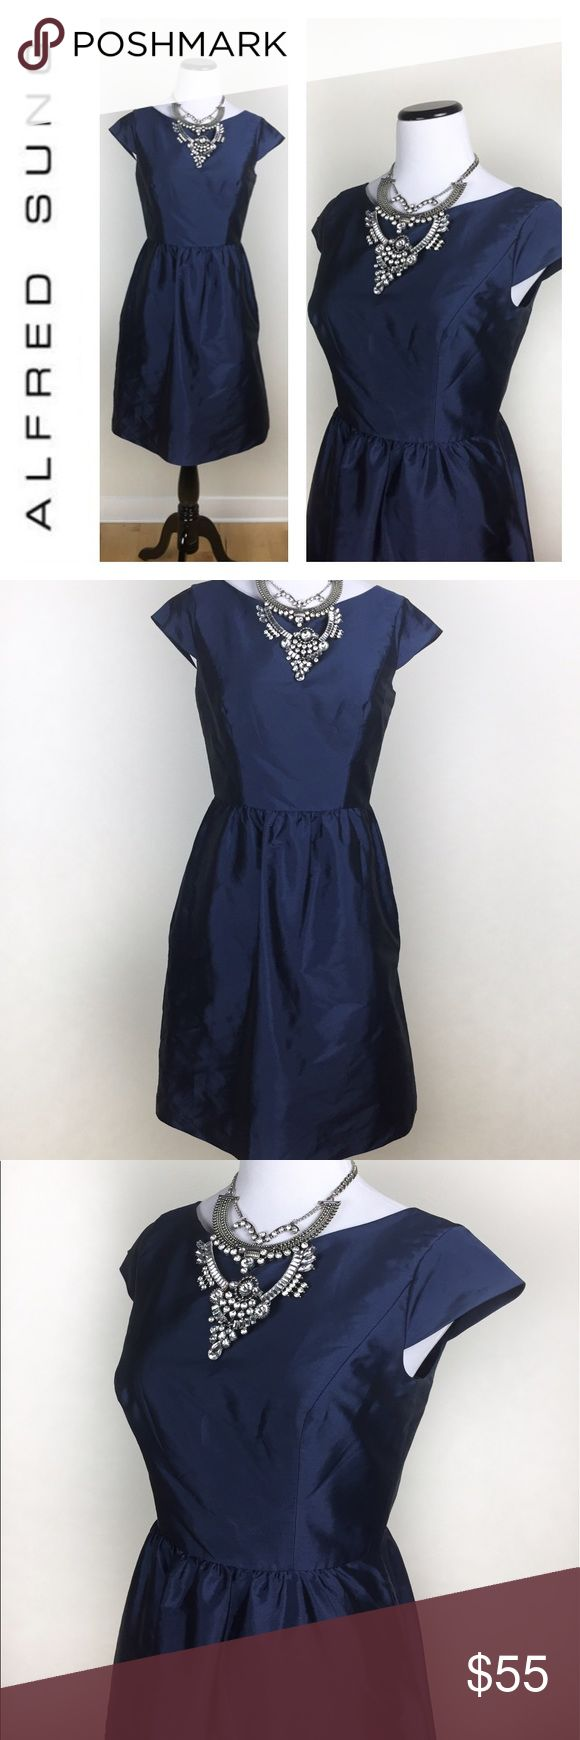 ALFRED SUNG NAVY METALLIC COCKTAIL DRESS SZ8 Elegant and gorgeous Alfred Sung navy metallic cocktail dress! Pre loved In mint condition, no holes or stains, minimal to no signs of wear. Perfect for that cocktail party, homecoming or wedding! Love it? Make an offer! Questions? Ask me 😉💖 comes without necklace ALFRED SUNG Dresses